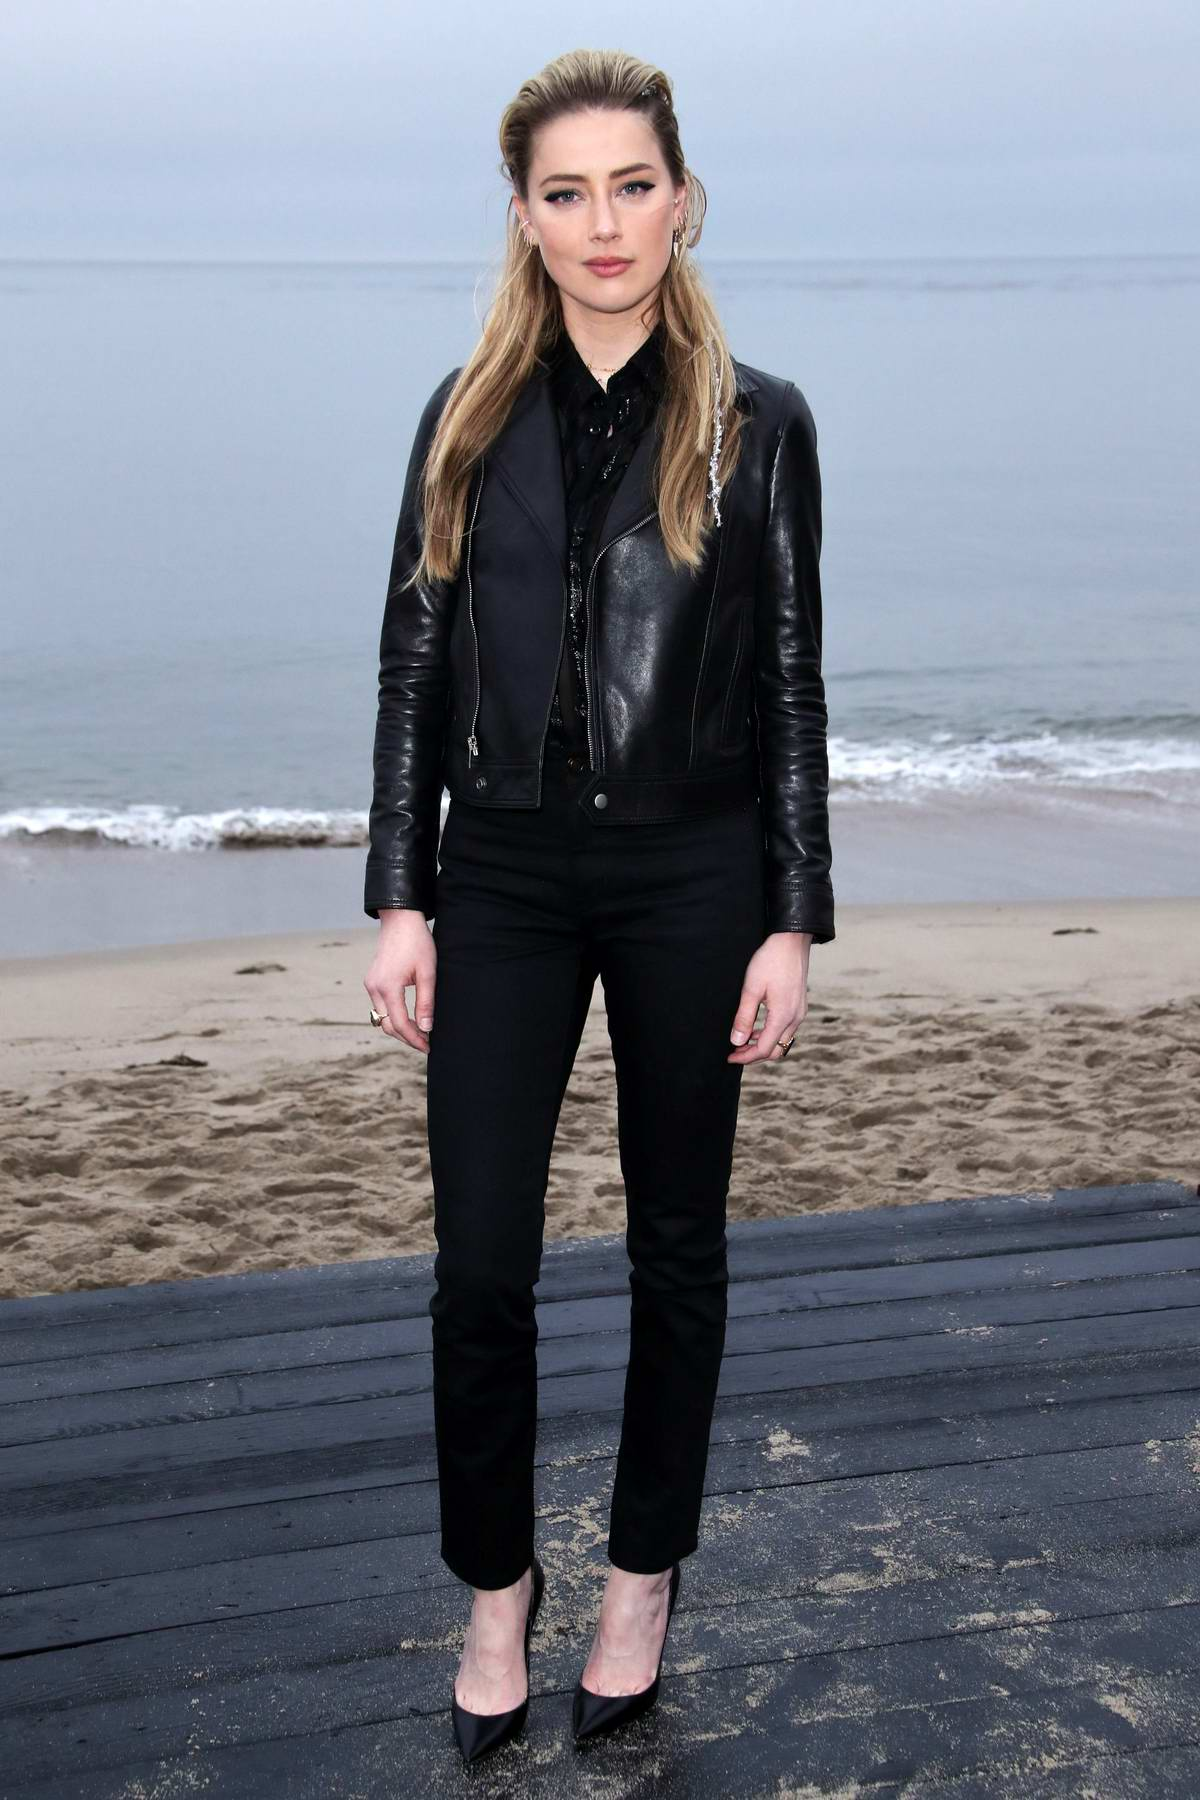 Amber Heard attends the Saint Laurent Men's Spring-Summer 2020 Fashion Show in Malibu, California